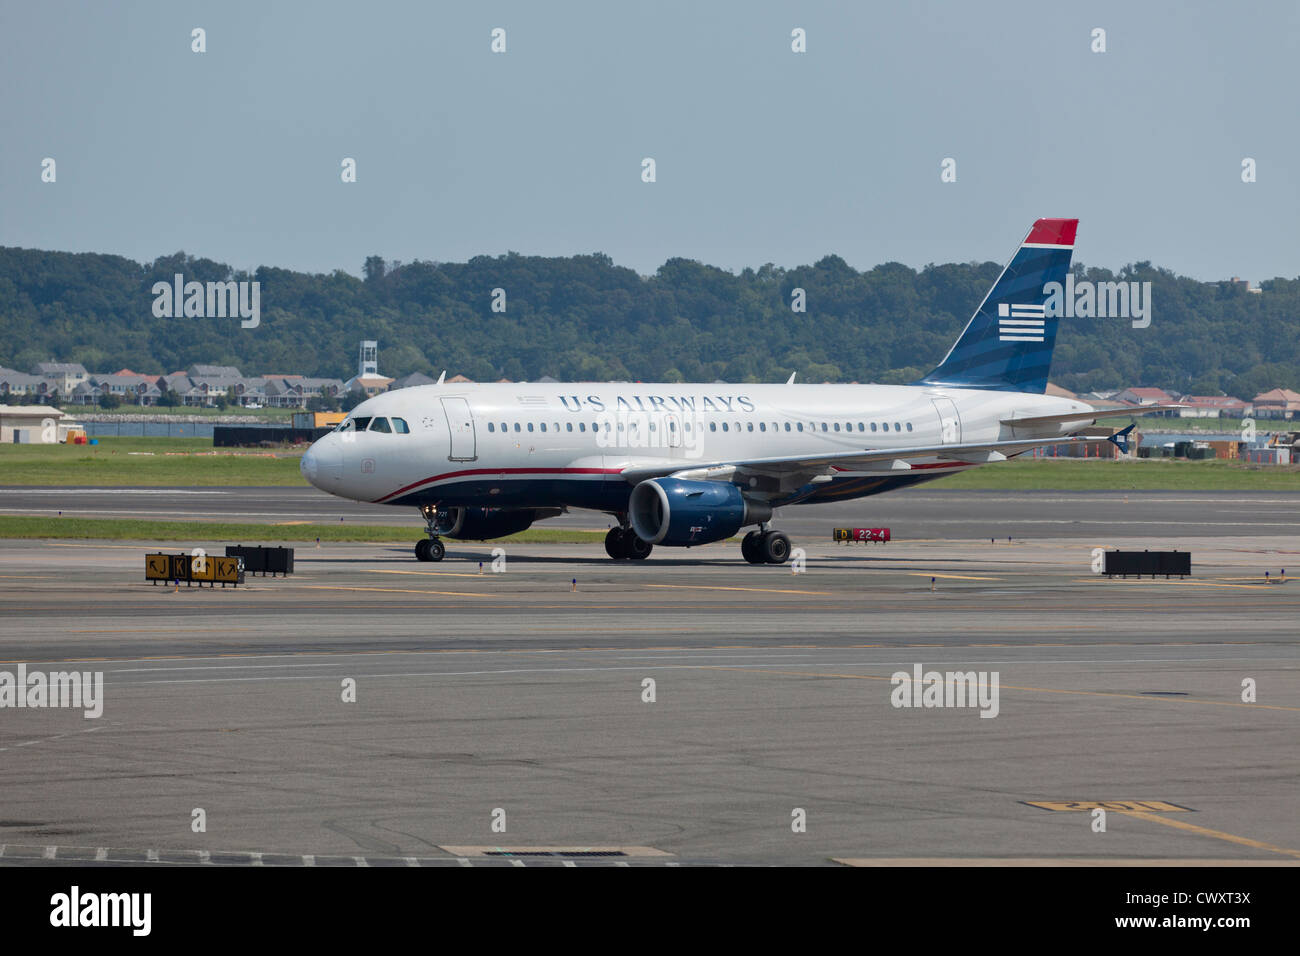 A US Airways commuter jet on the runway - Stock Image